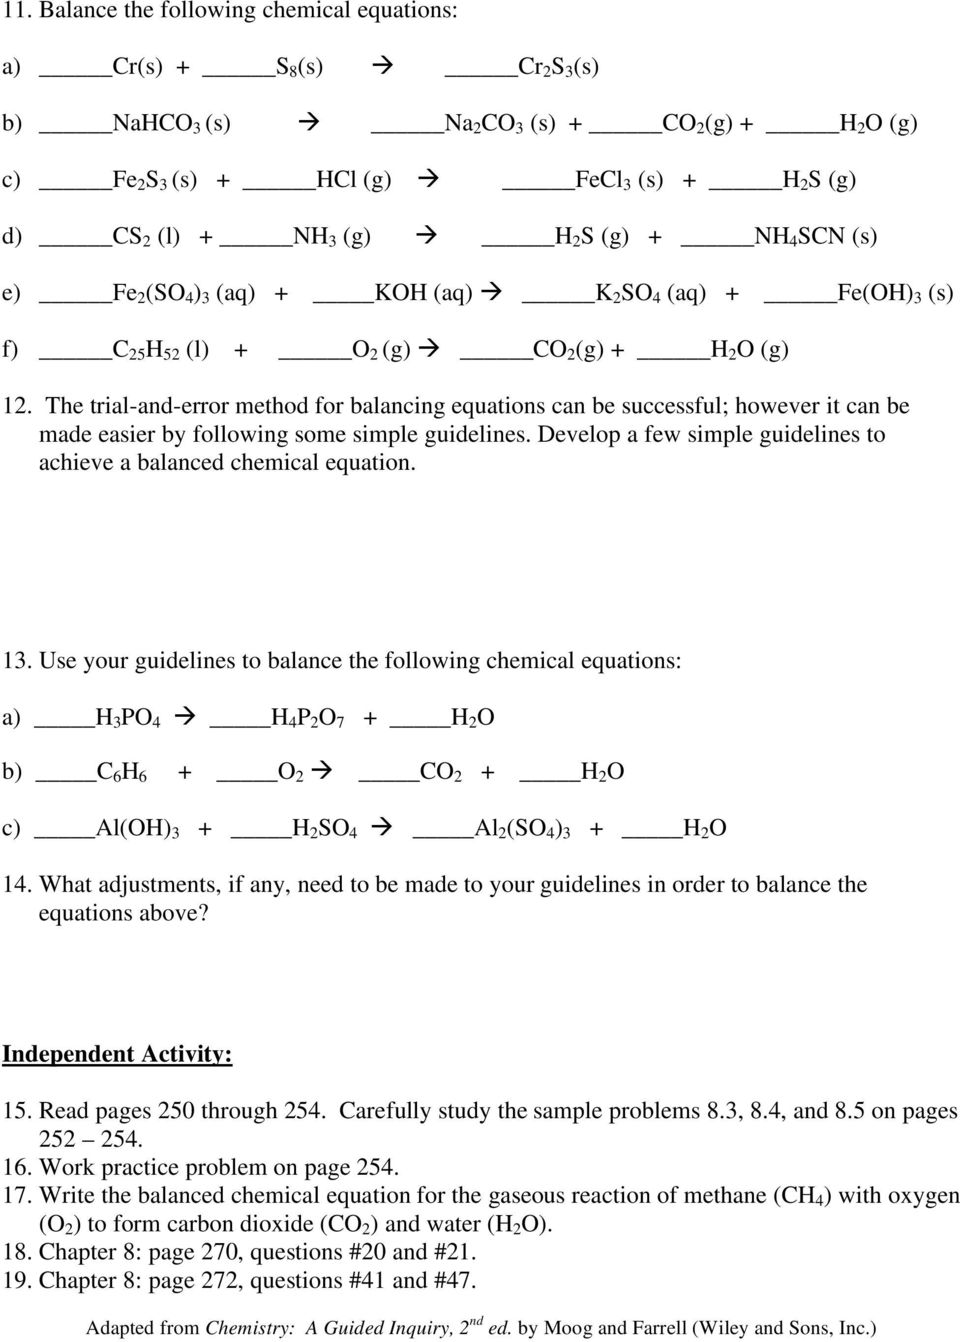 Writing Chemical Equations Worksheet Answer Key